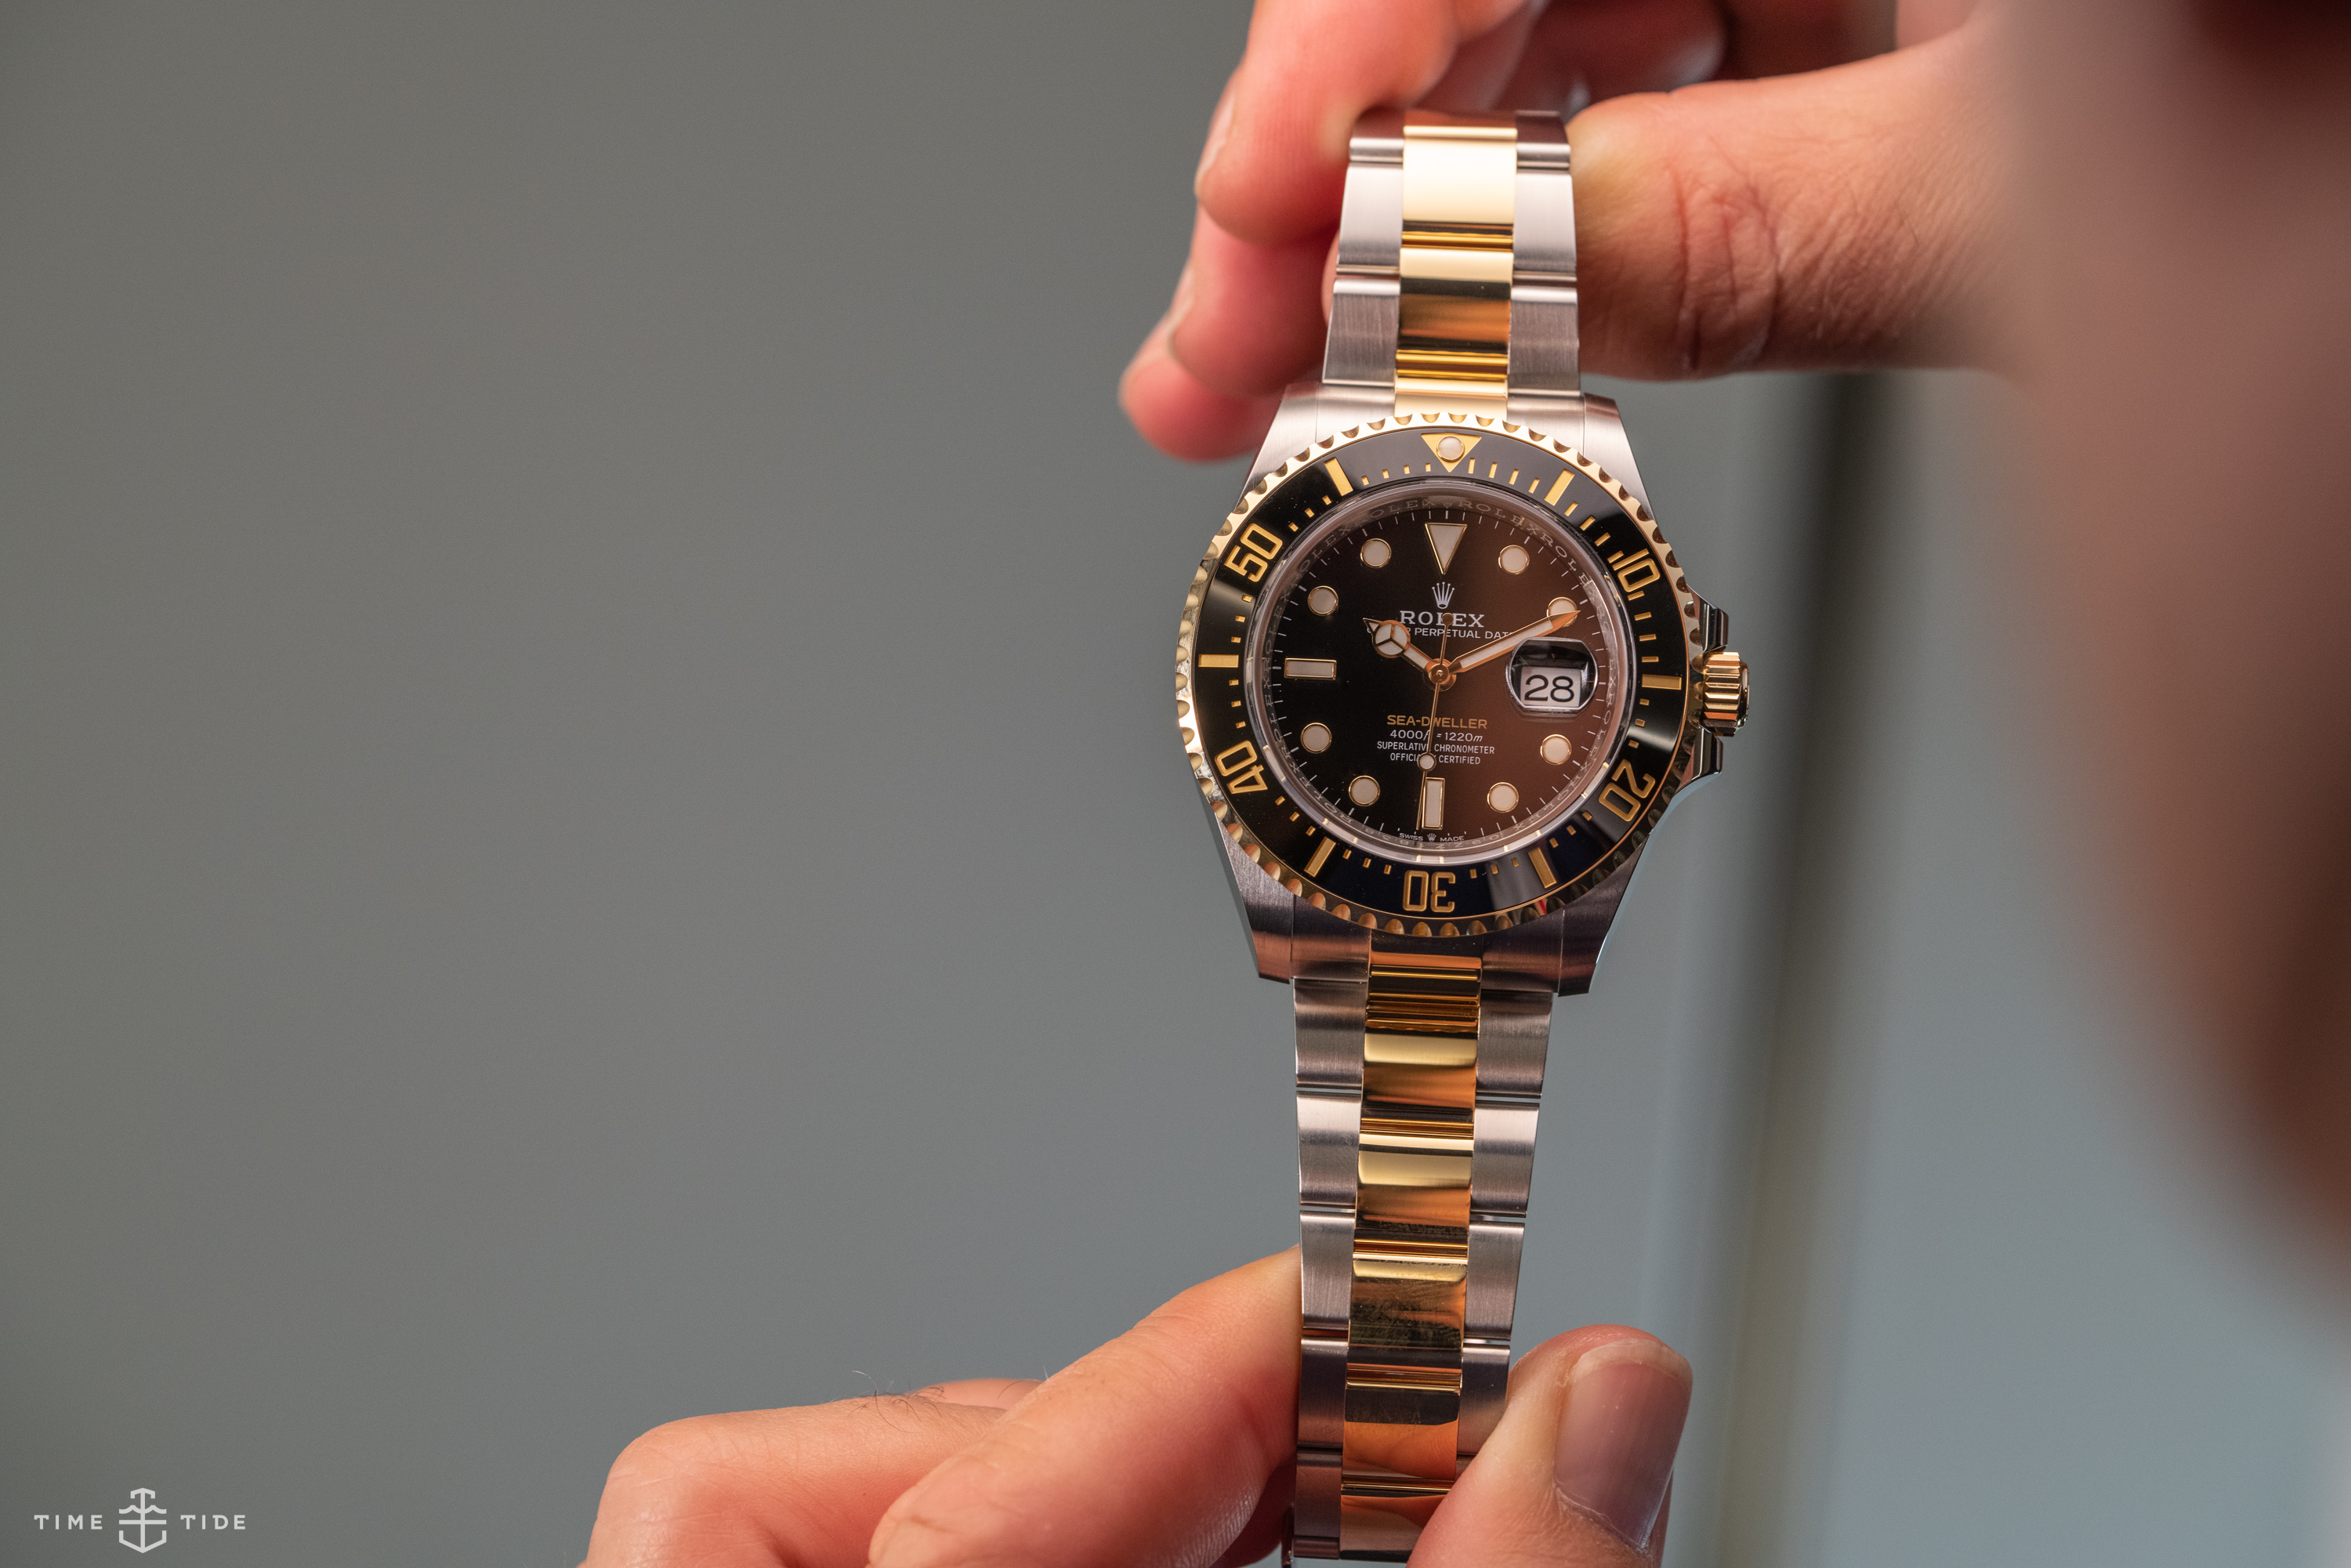 The Rolex Sea-Dweller Reference. 126603